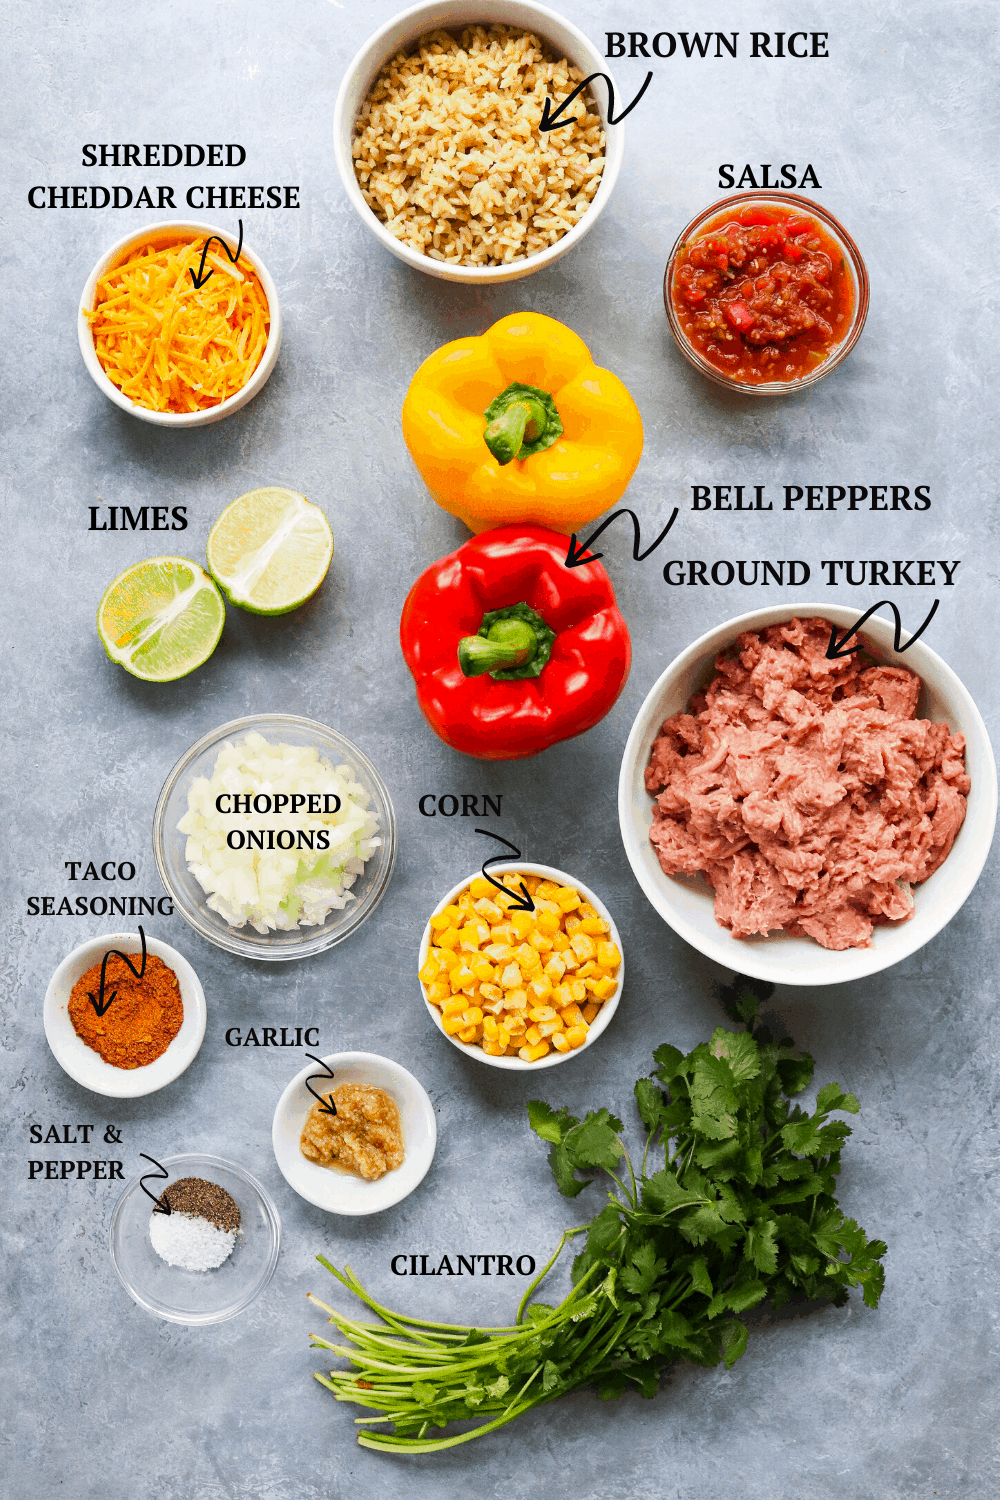 rice, peppers, cheese, salsa, limes, ground turkey and spices on a gray board